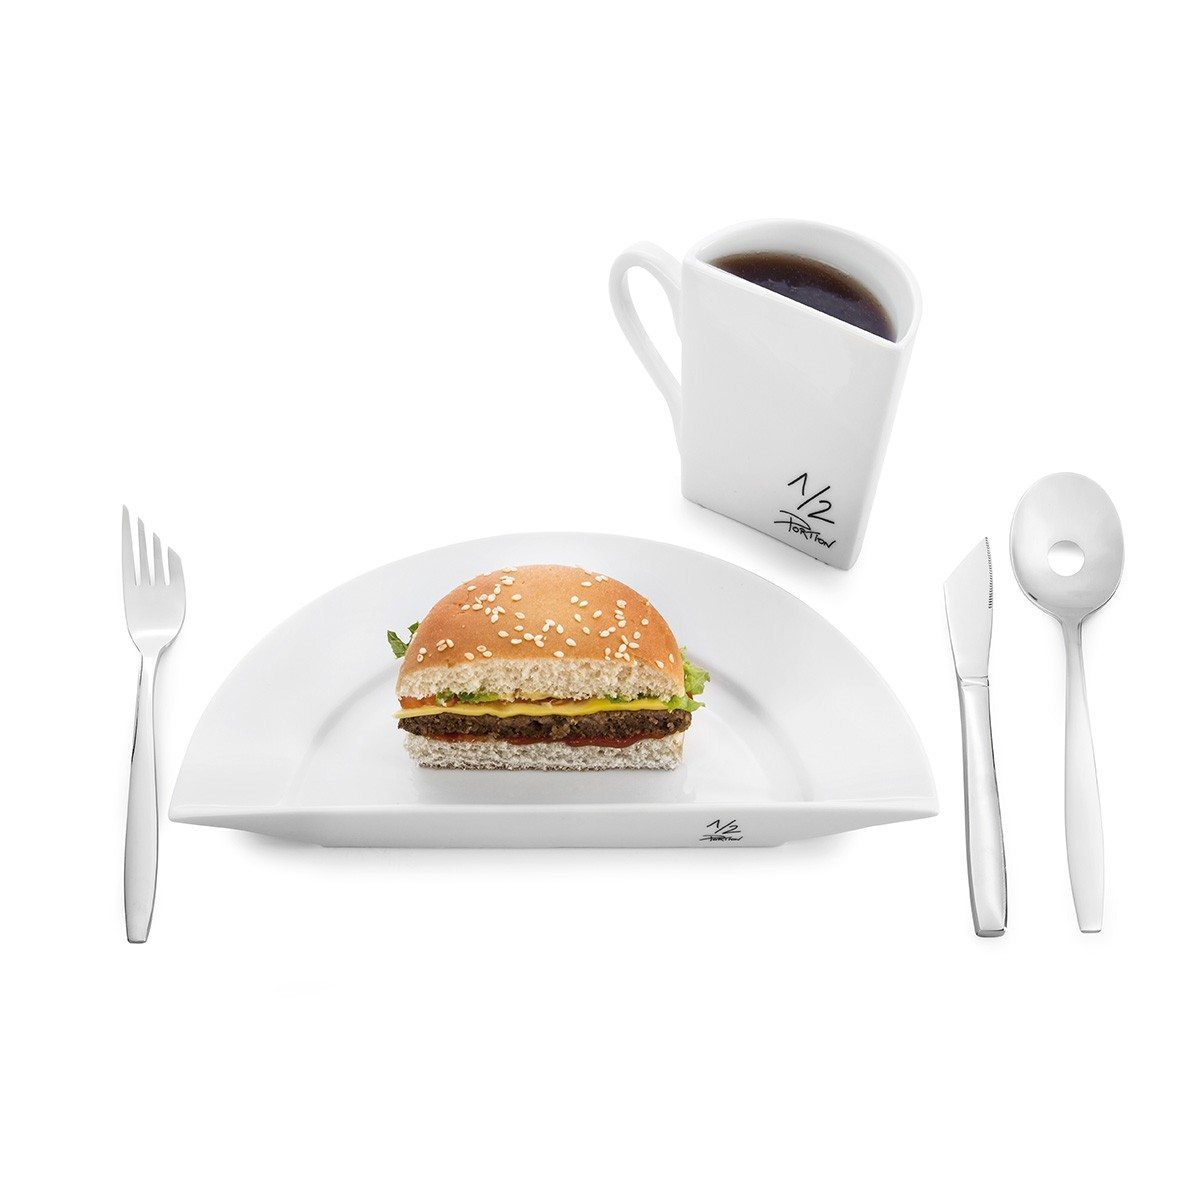 ½ Portion - assiette ou tasse